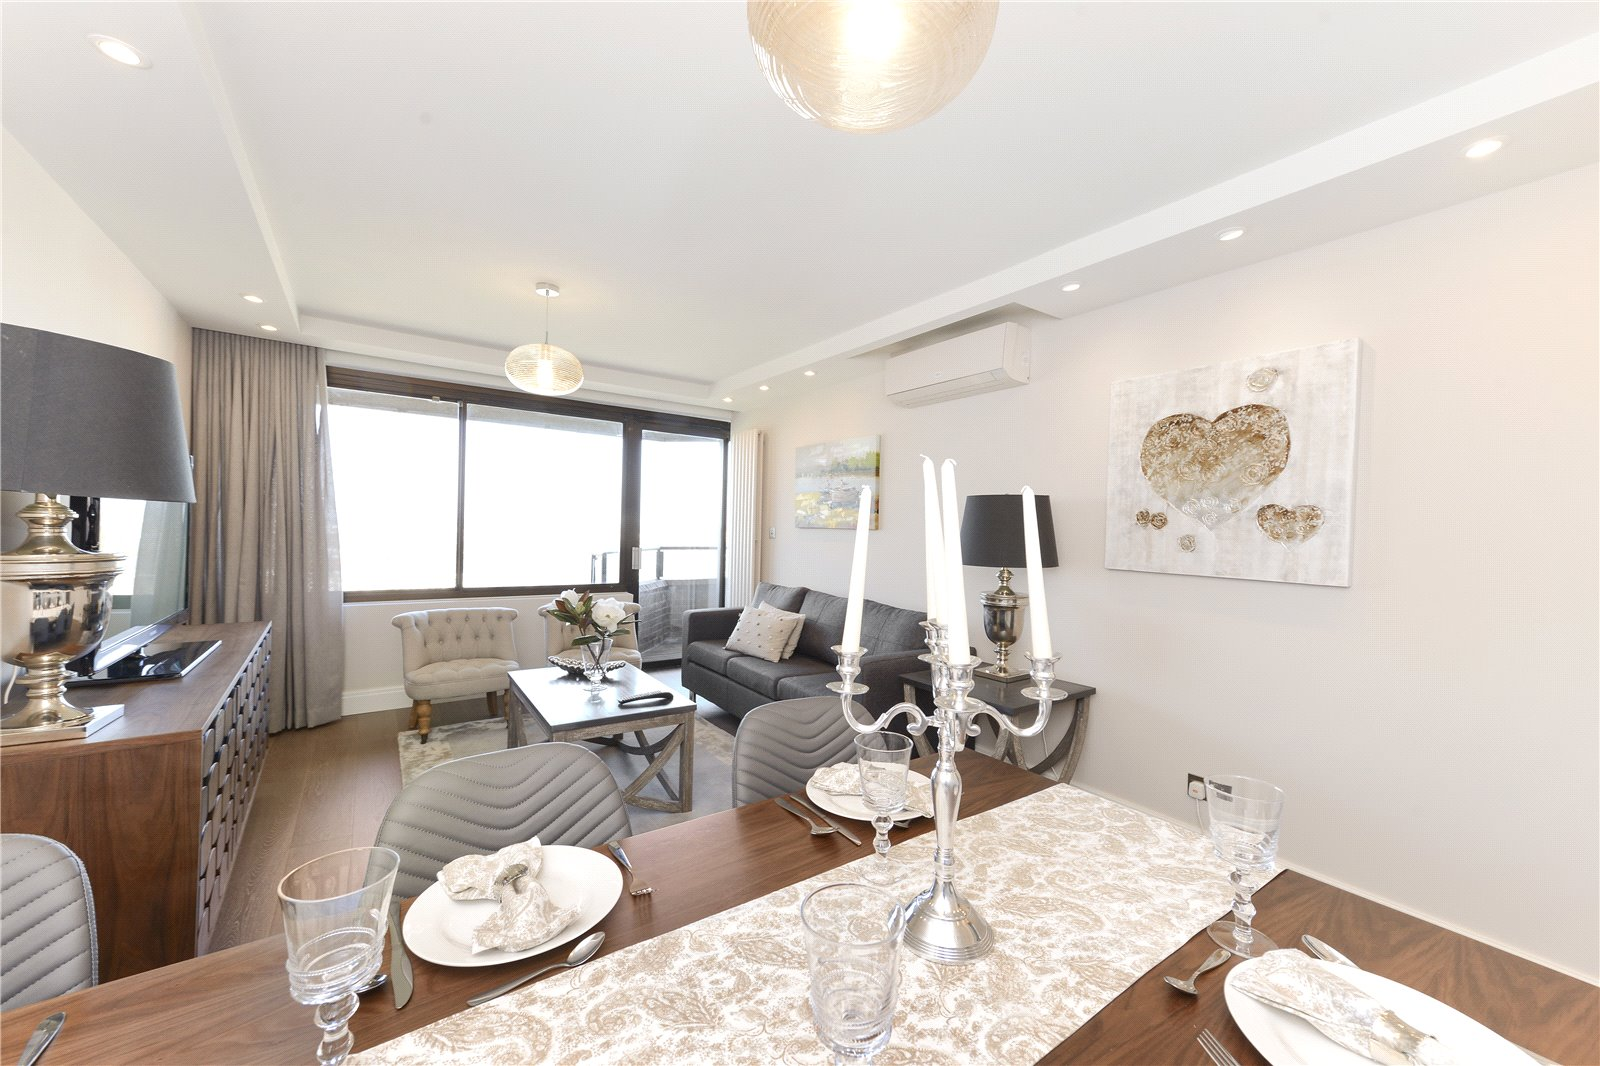 Apartment for Rent at Finchley Road, Swiss Cottage, London, NW3 Finchley Road, Swiss Cottage, London, NW3